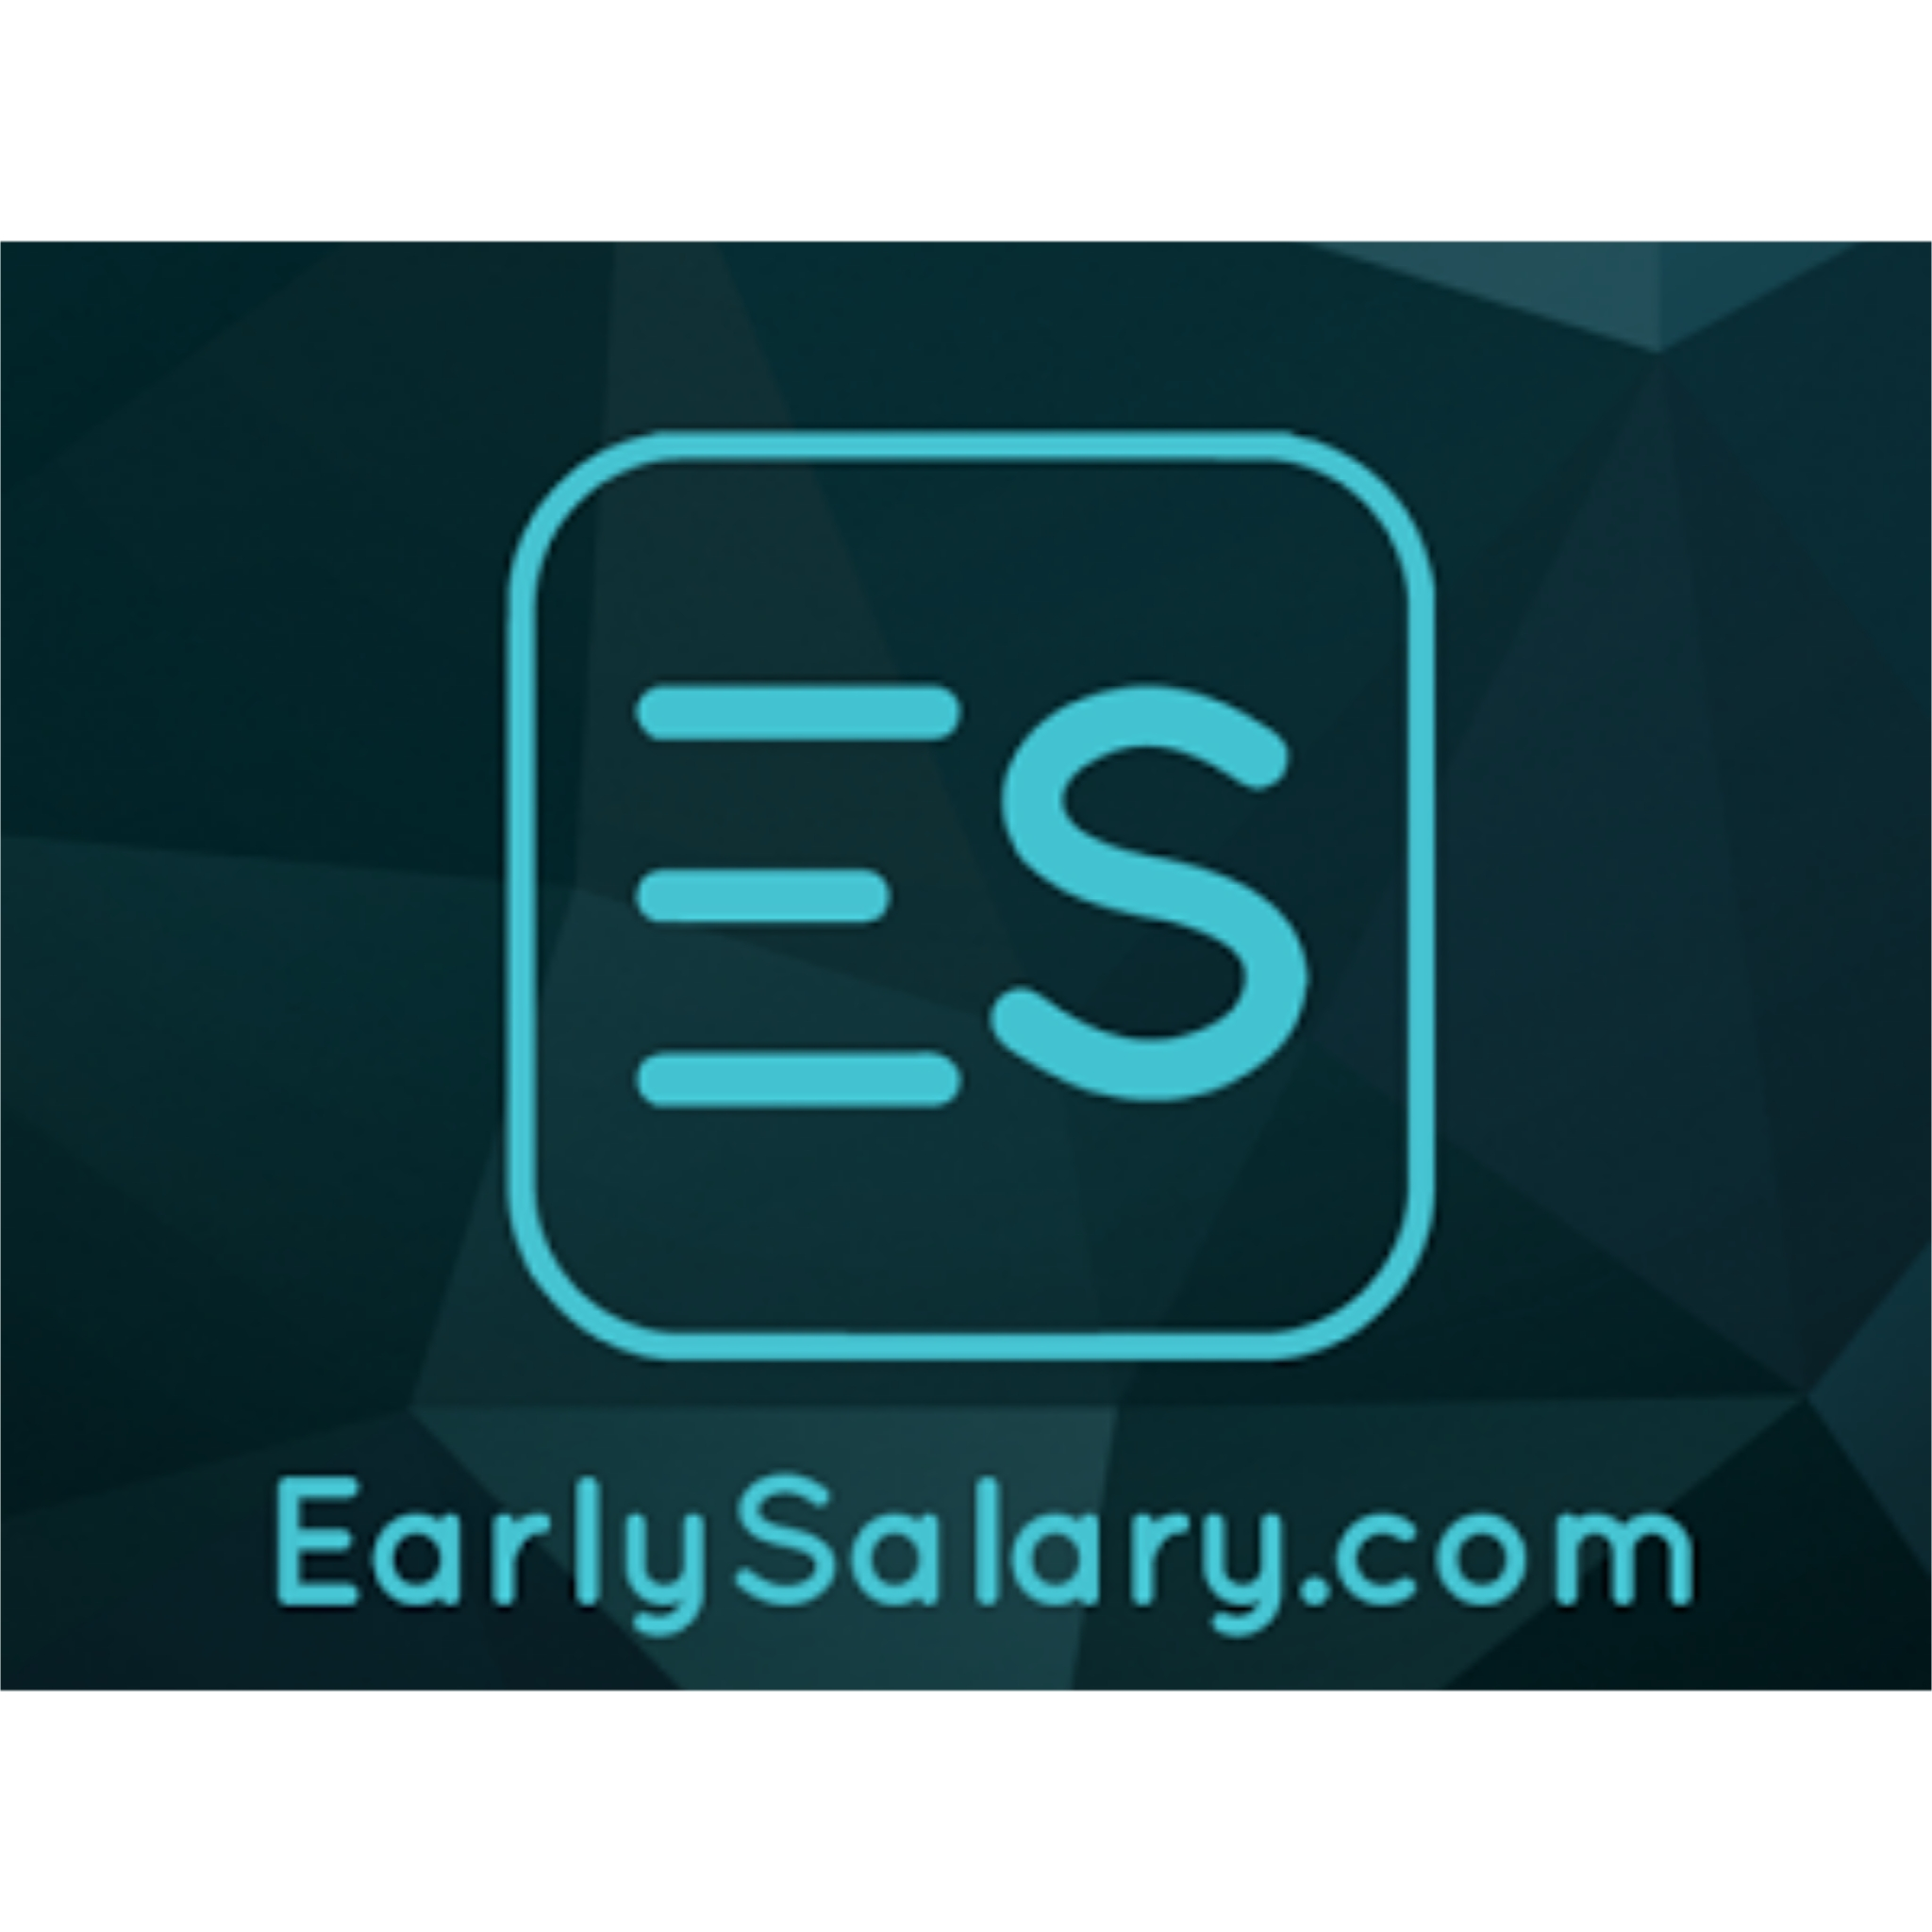 EarlySalary.com